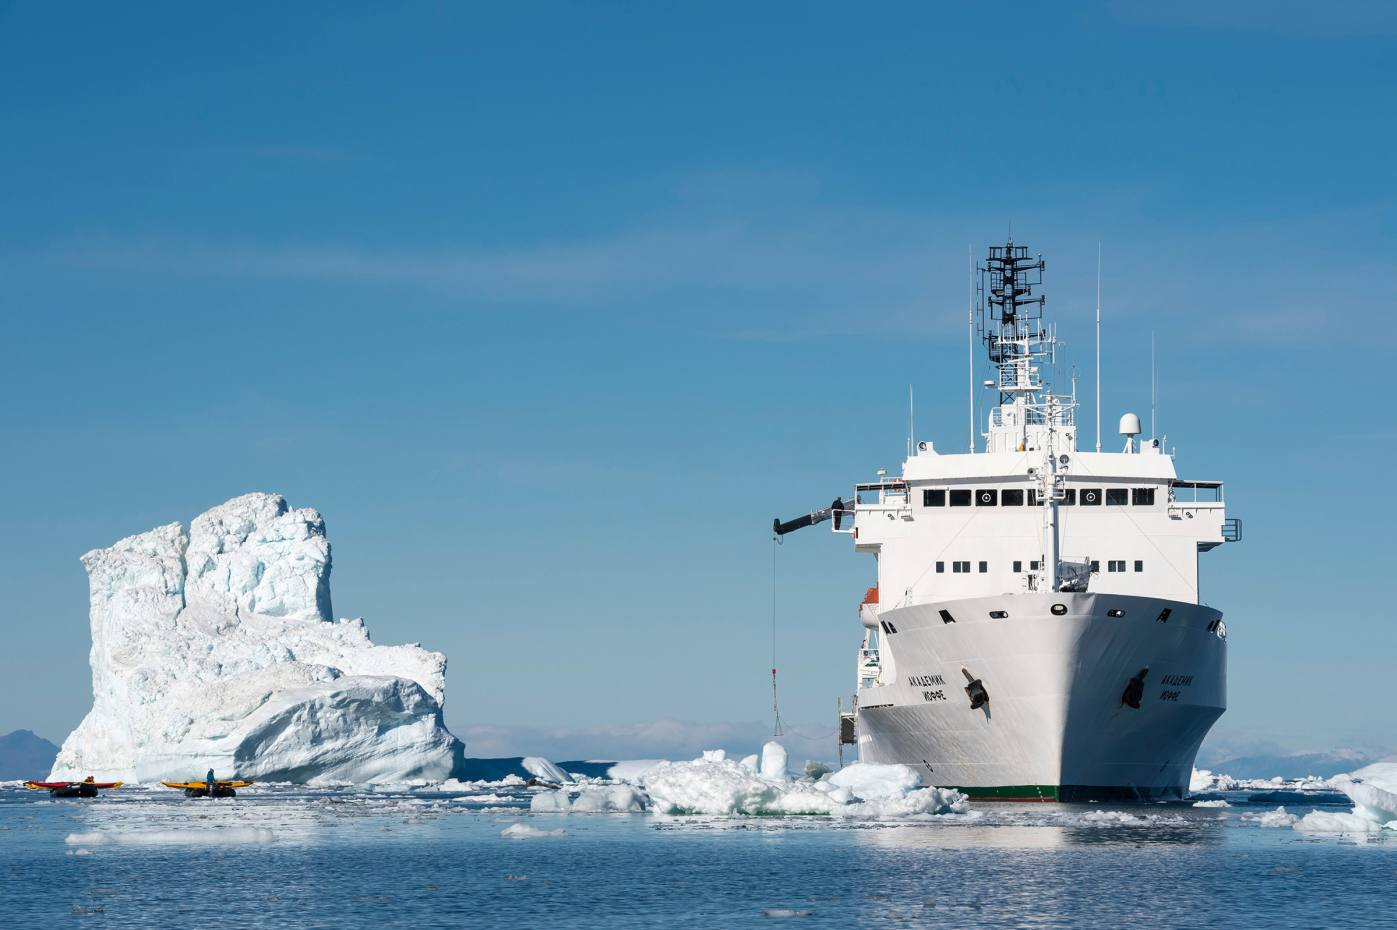 A 14-day Antarctica expedition aboard the Akademik Ioffe in November is led by photographers